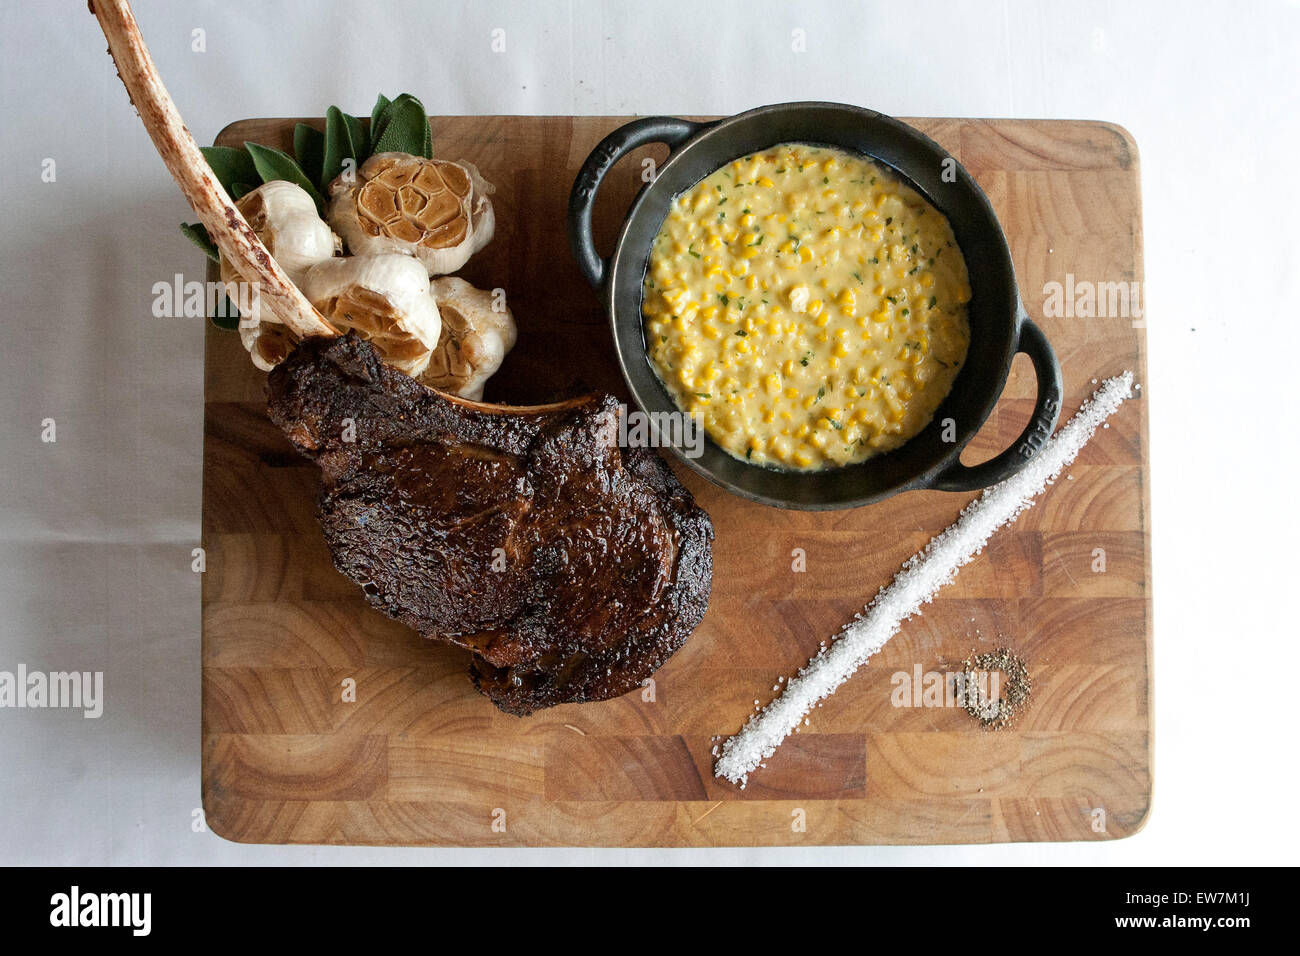 Steak dinner with garlic and corn - Stock Image